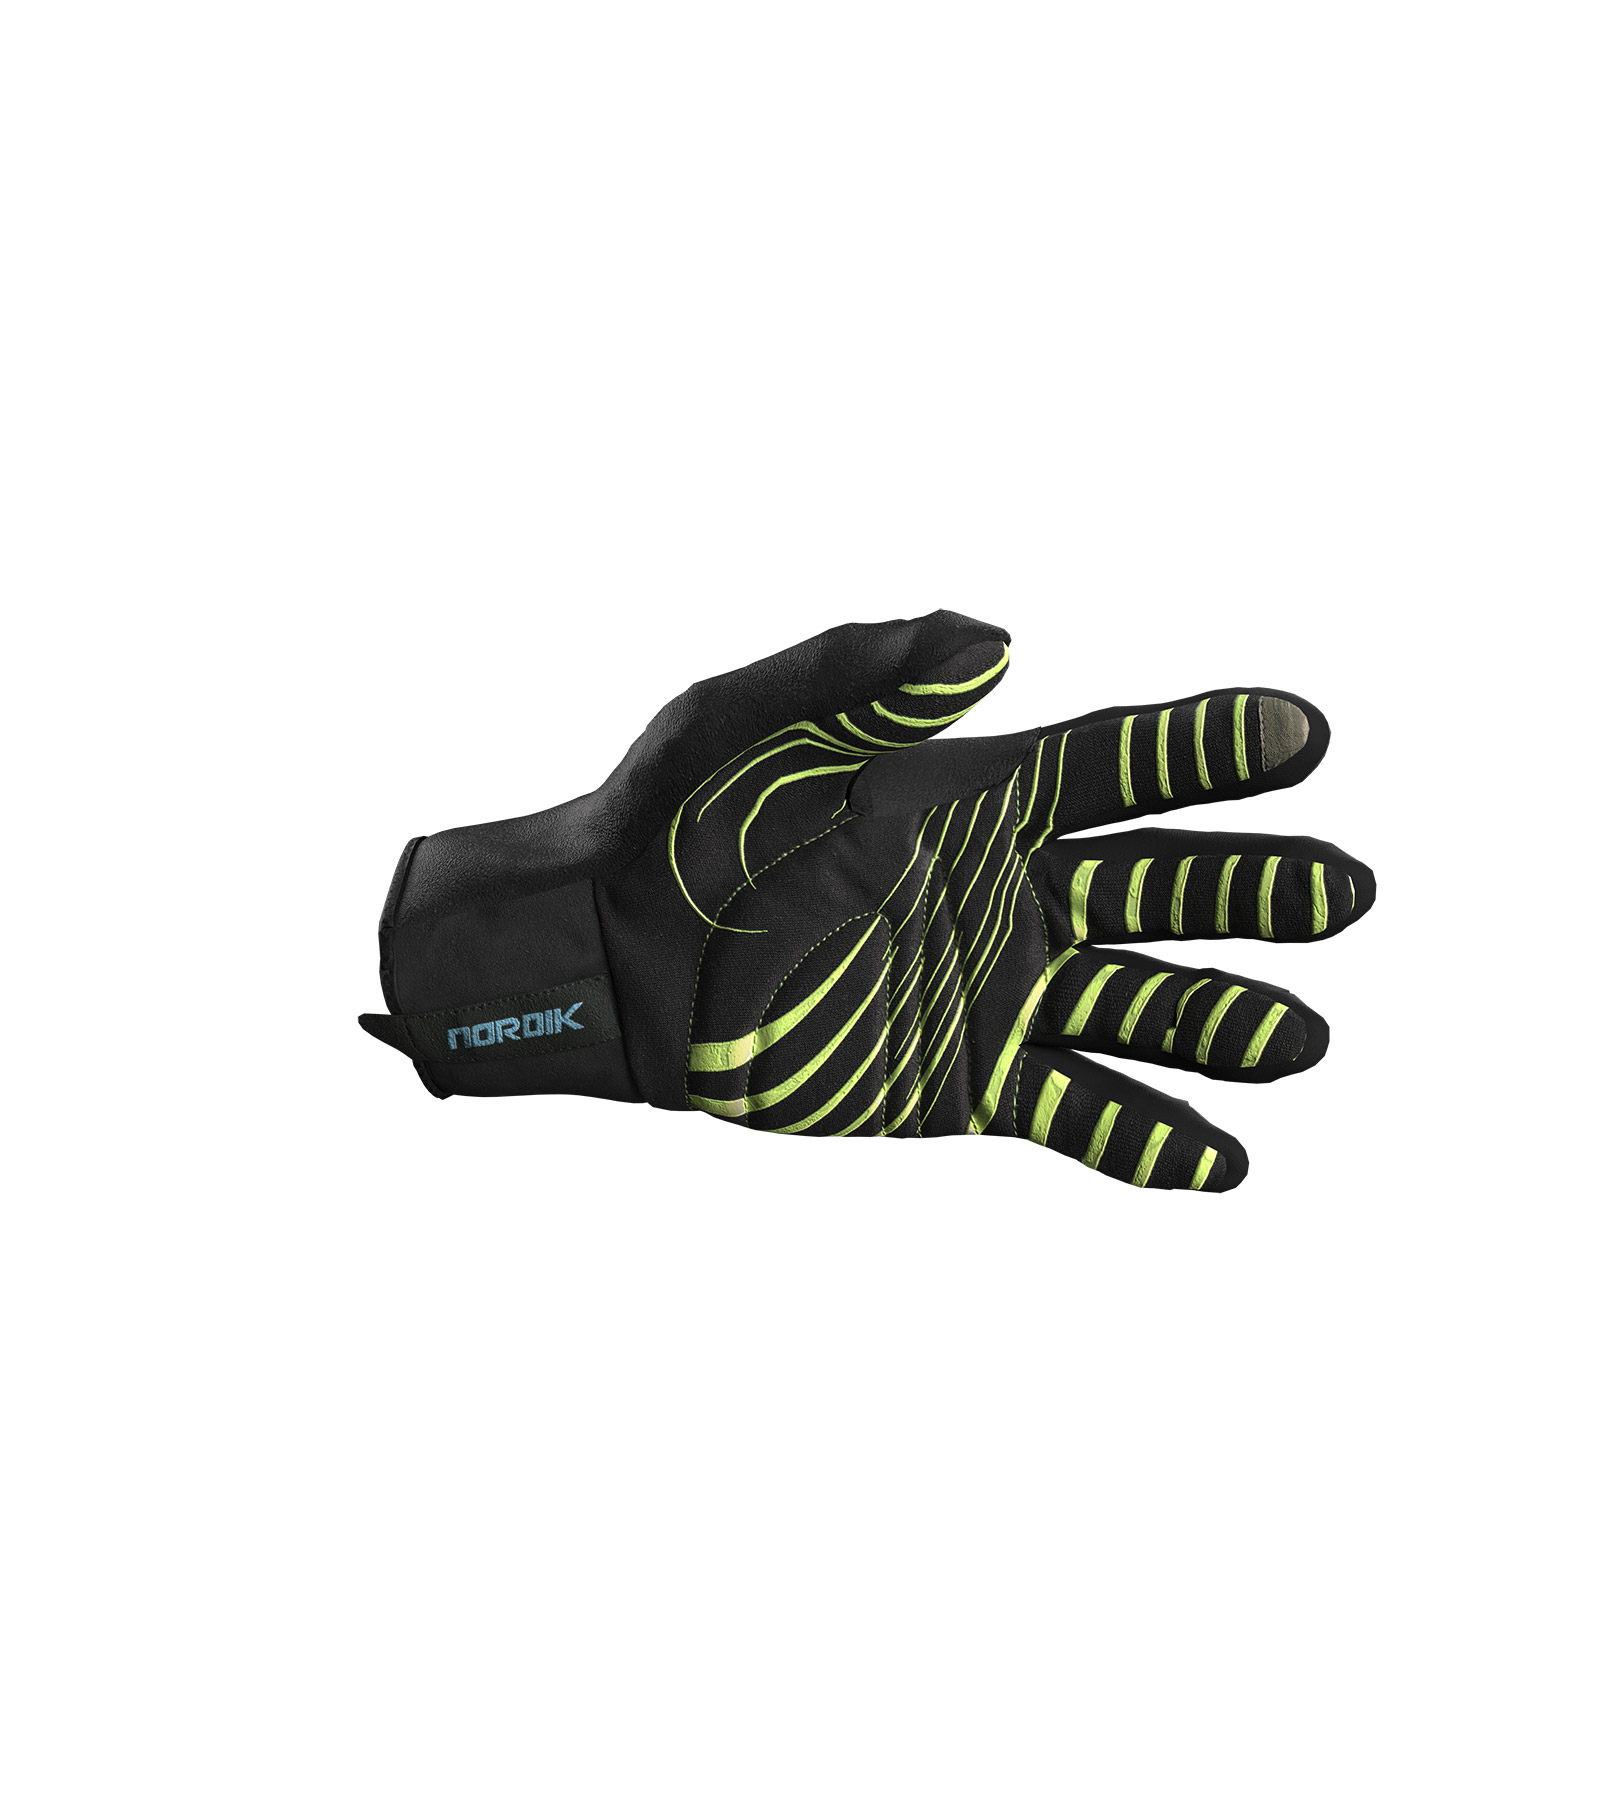 ALÉ ACCESSORI NORDIK gloves – black L05540115